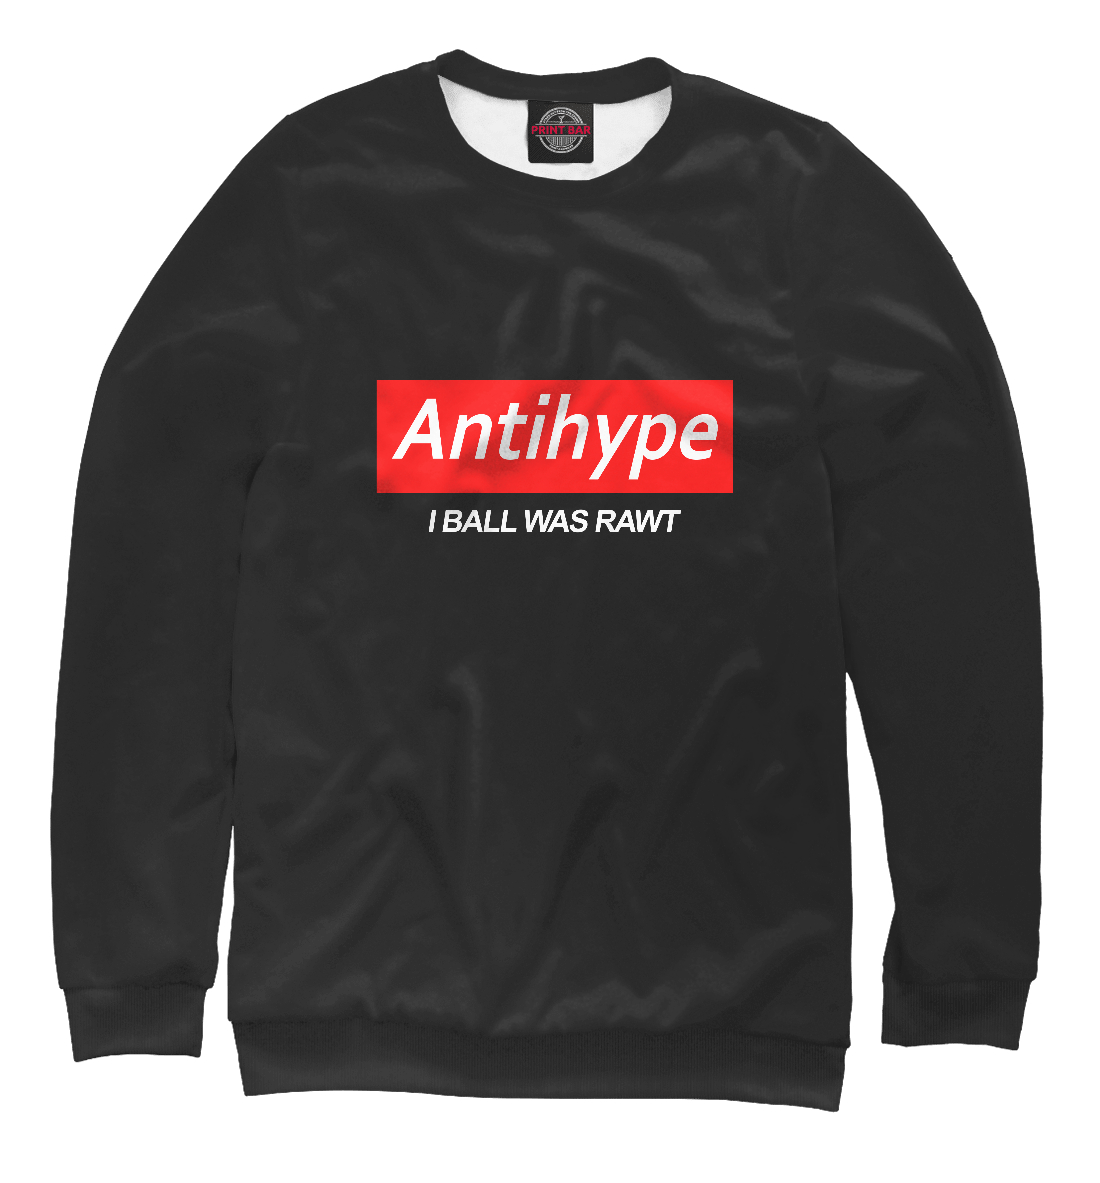 Купить Антихайп i ball was rawt (black), Printbar, Свитшоты, APD-420293-swi-1